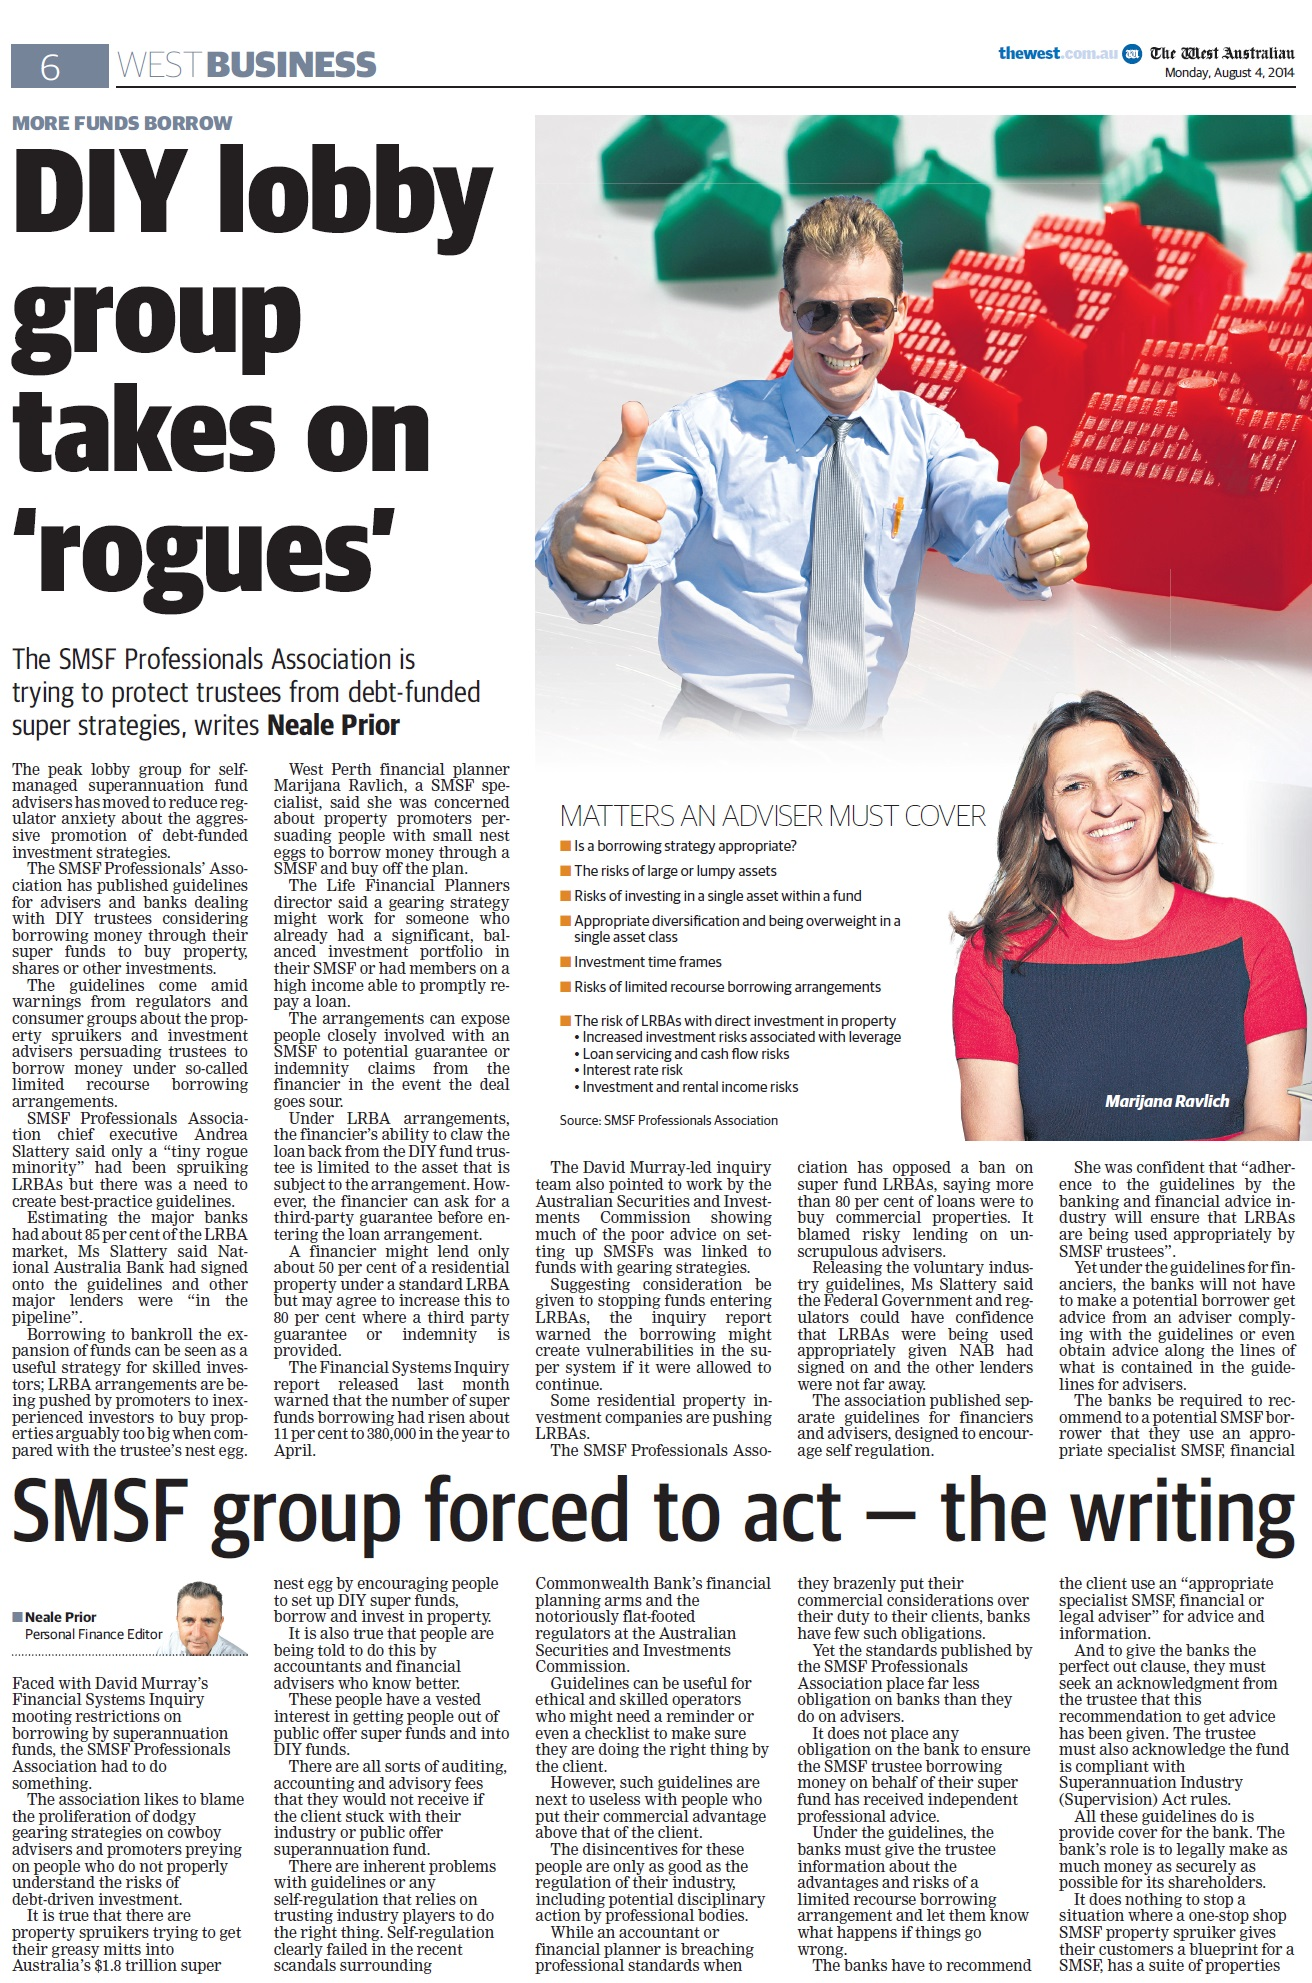 DIY Lobby Group Takes on Rogues - The West August 4, 2014 (Page 6)